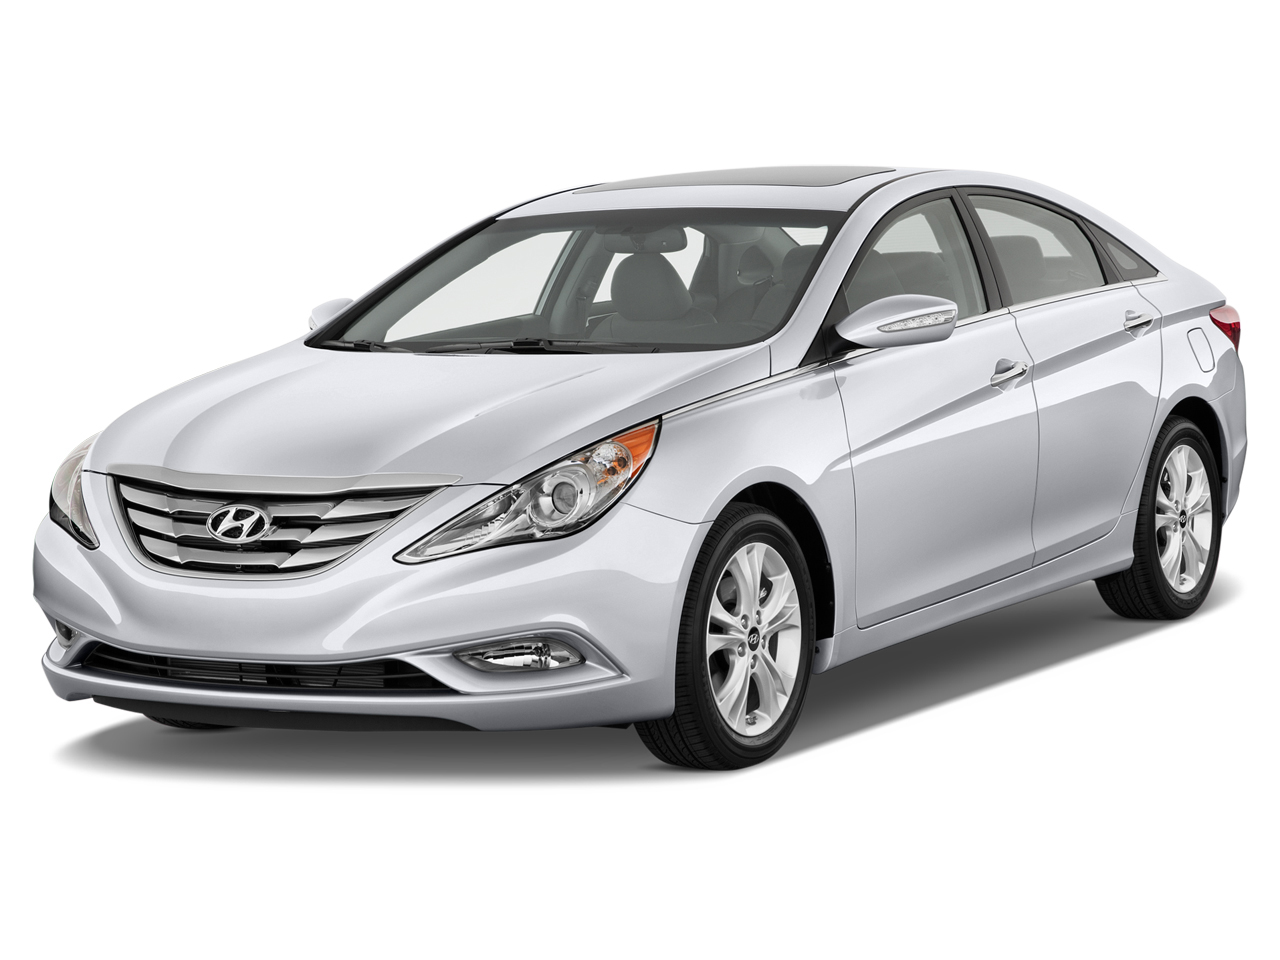 2013 hyundai sonata review ratings specs prices and photos the car connection. Black Bedroom Furniture Sets. Home Design Ideas